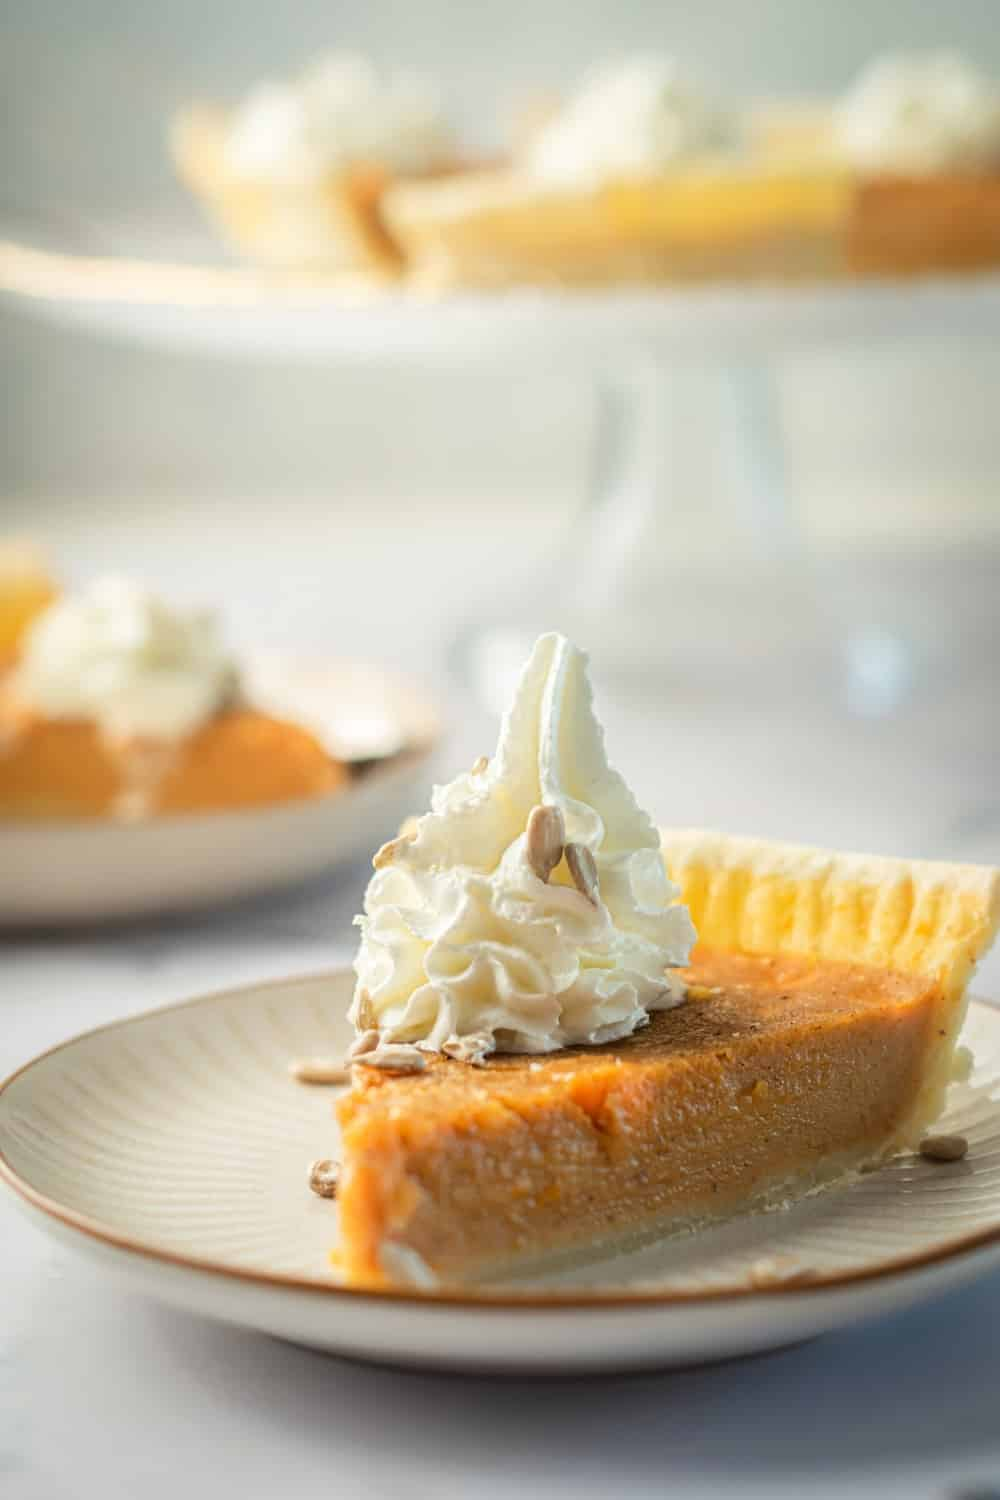 A slice of pumpkin custard pie on a white plate on a white counter.